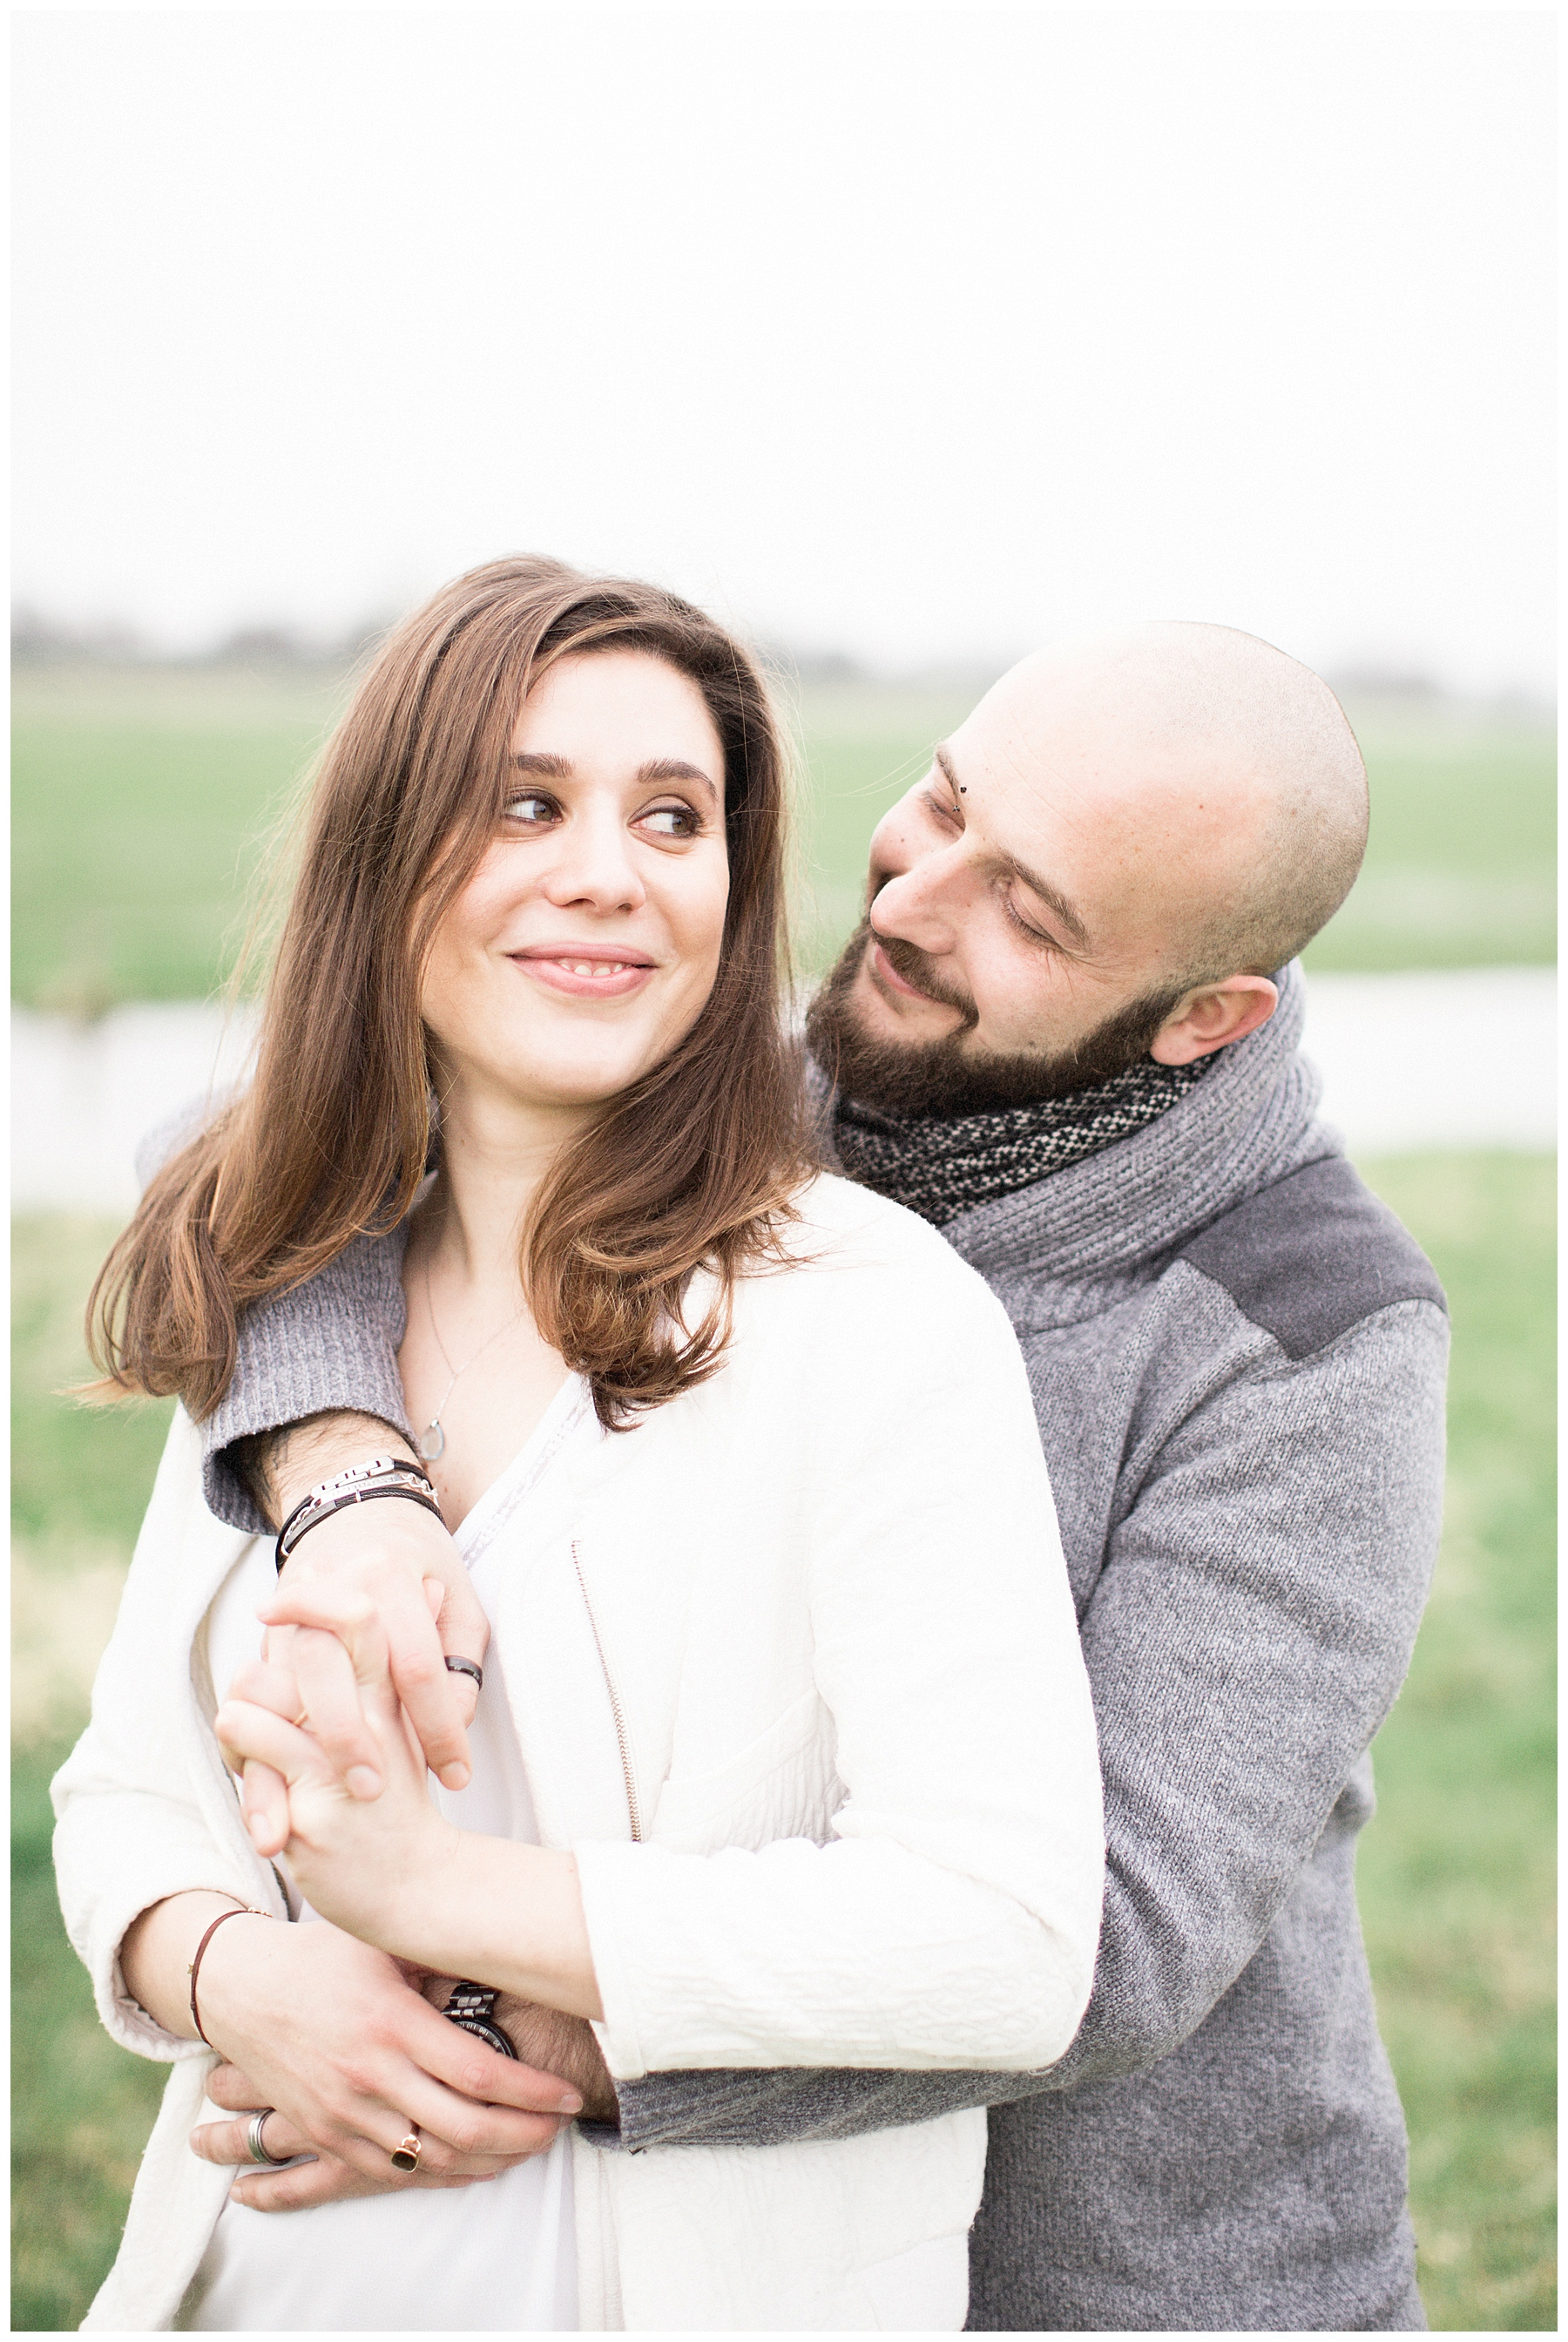 Marie-Alice G-Photographe couple fiancailles valognes cherbourg manche normandie - photographe mariage france_0010